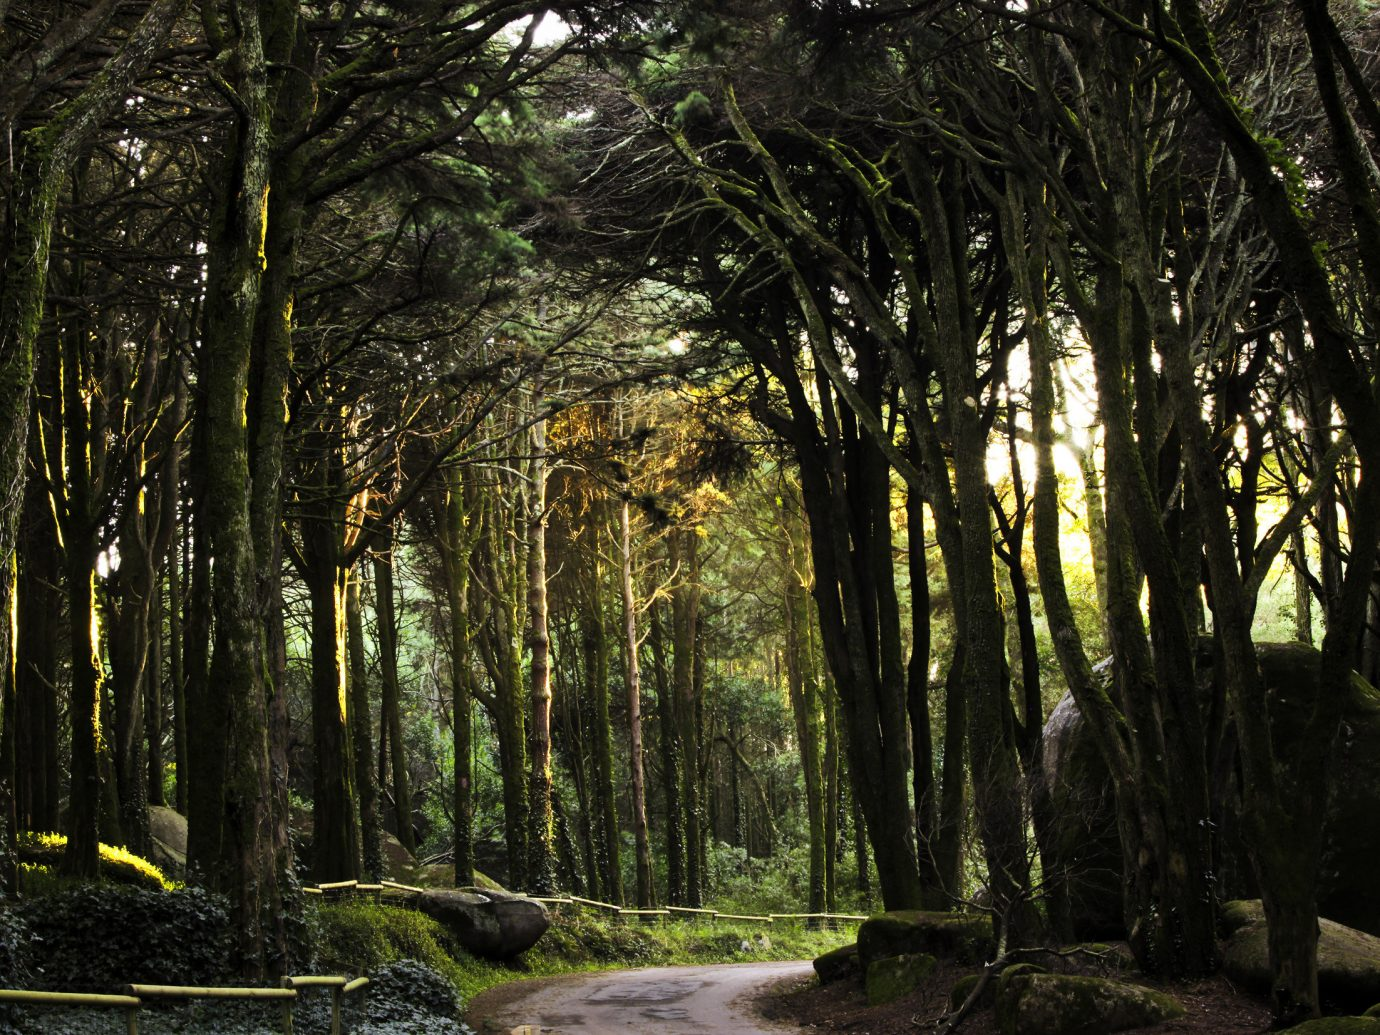 Lush forrest in Sintra, Portugal